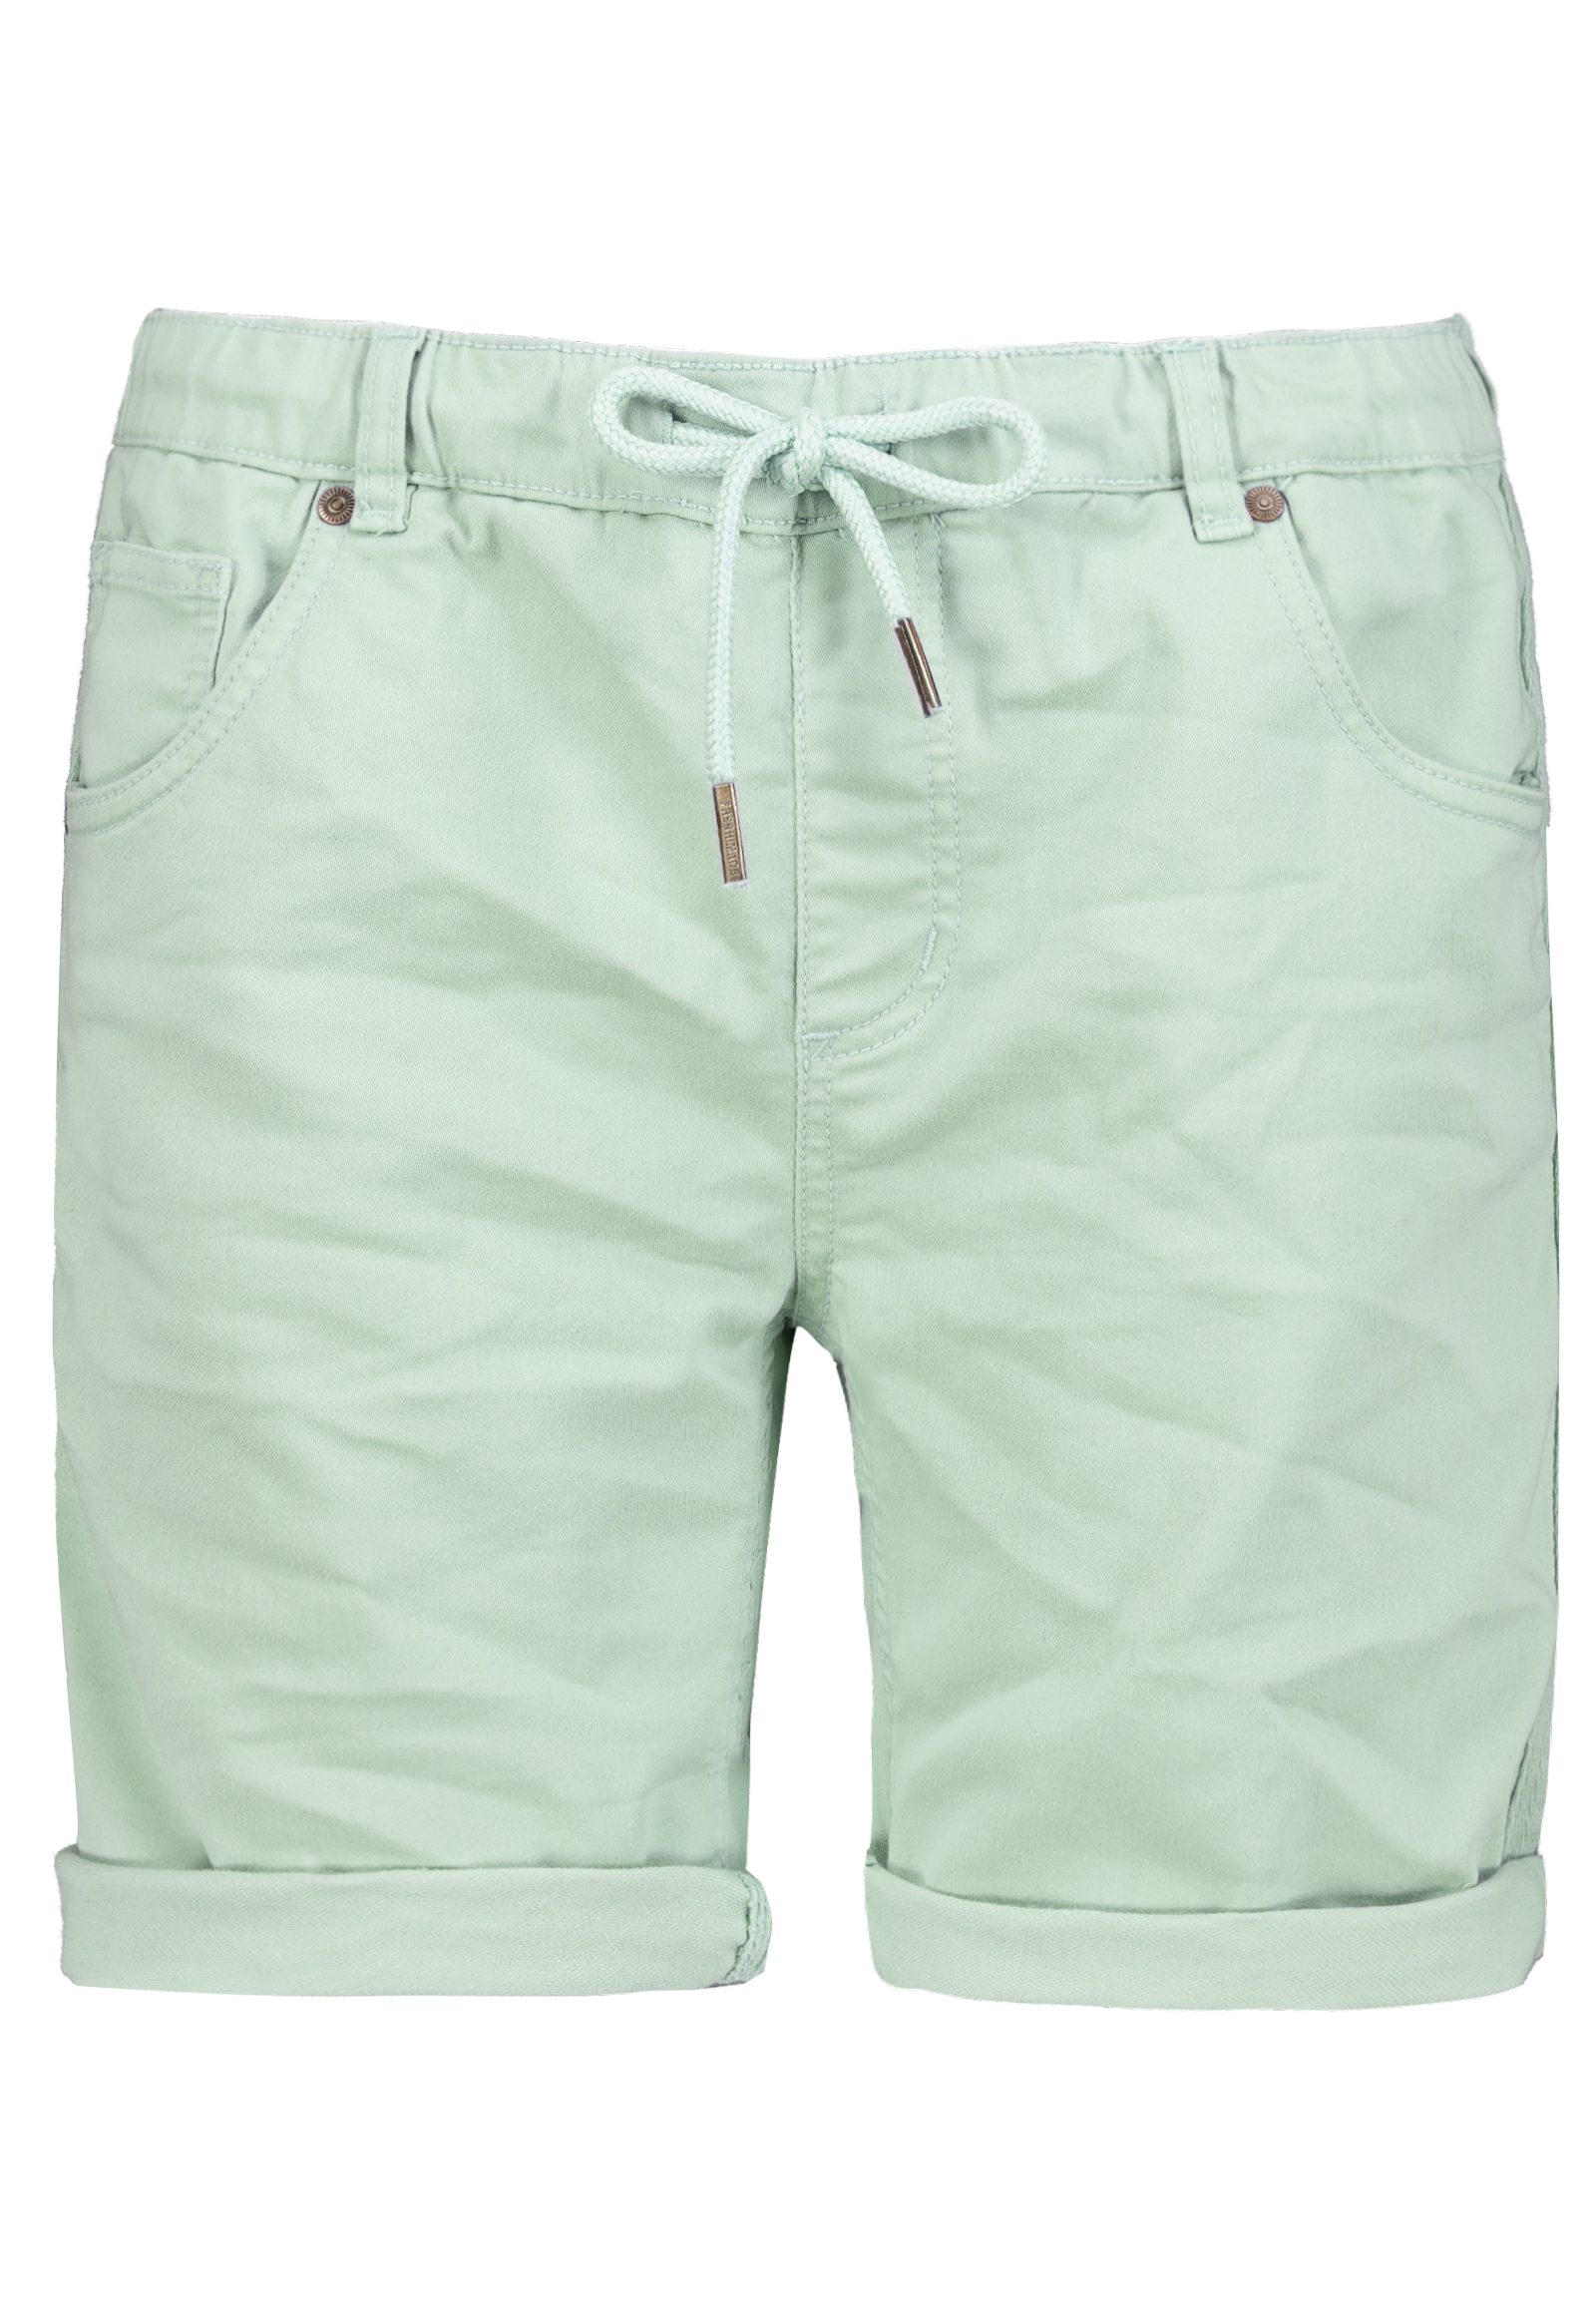 Vorschau: Bermuda in Sweat Denim Optik